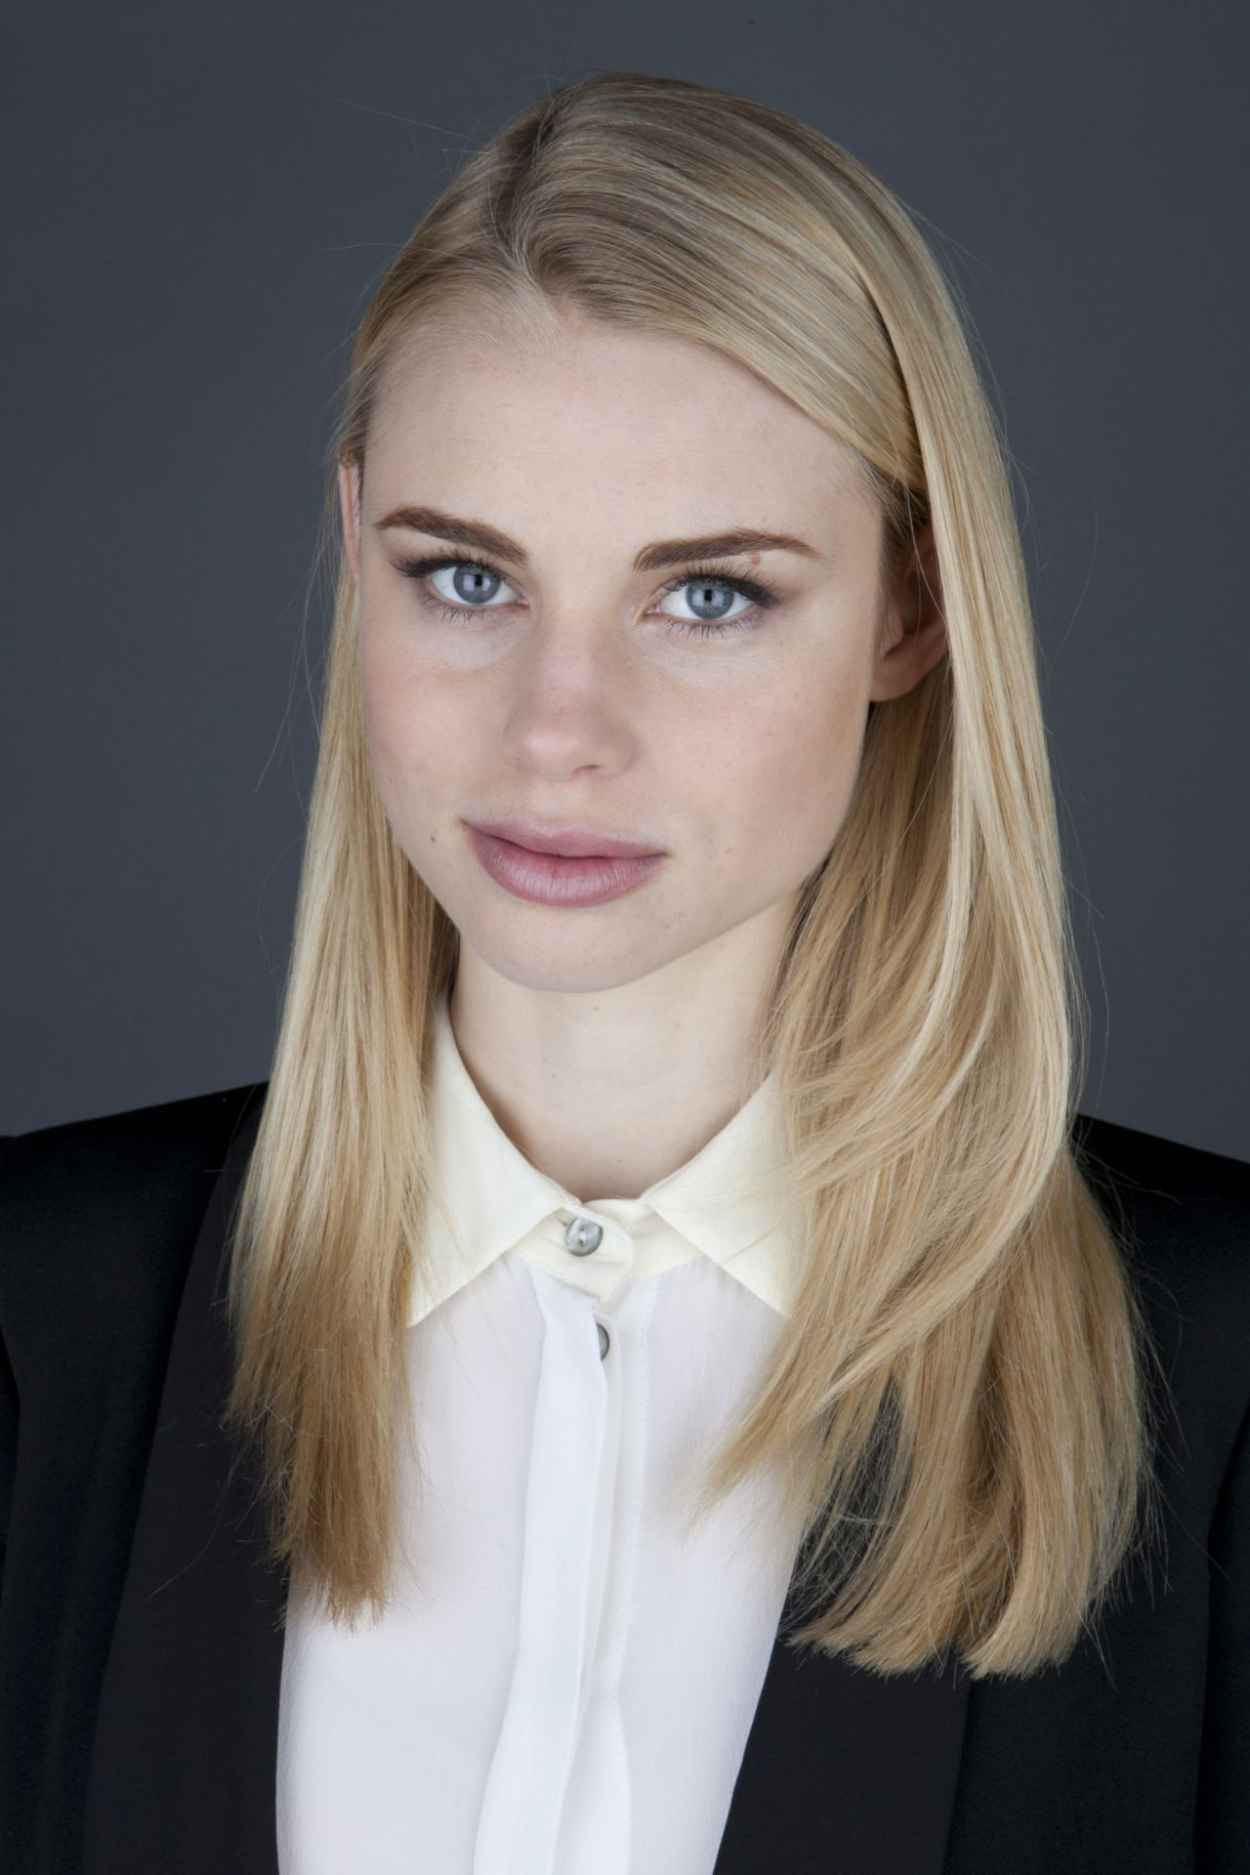 lucy fry vk